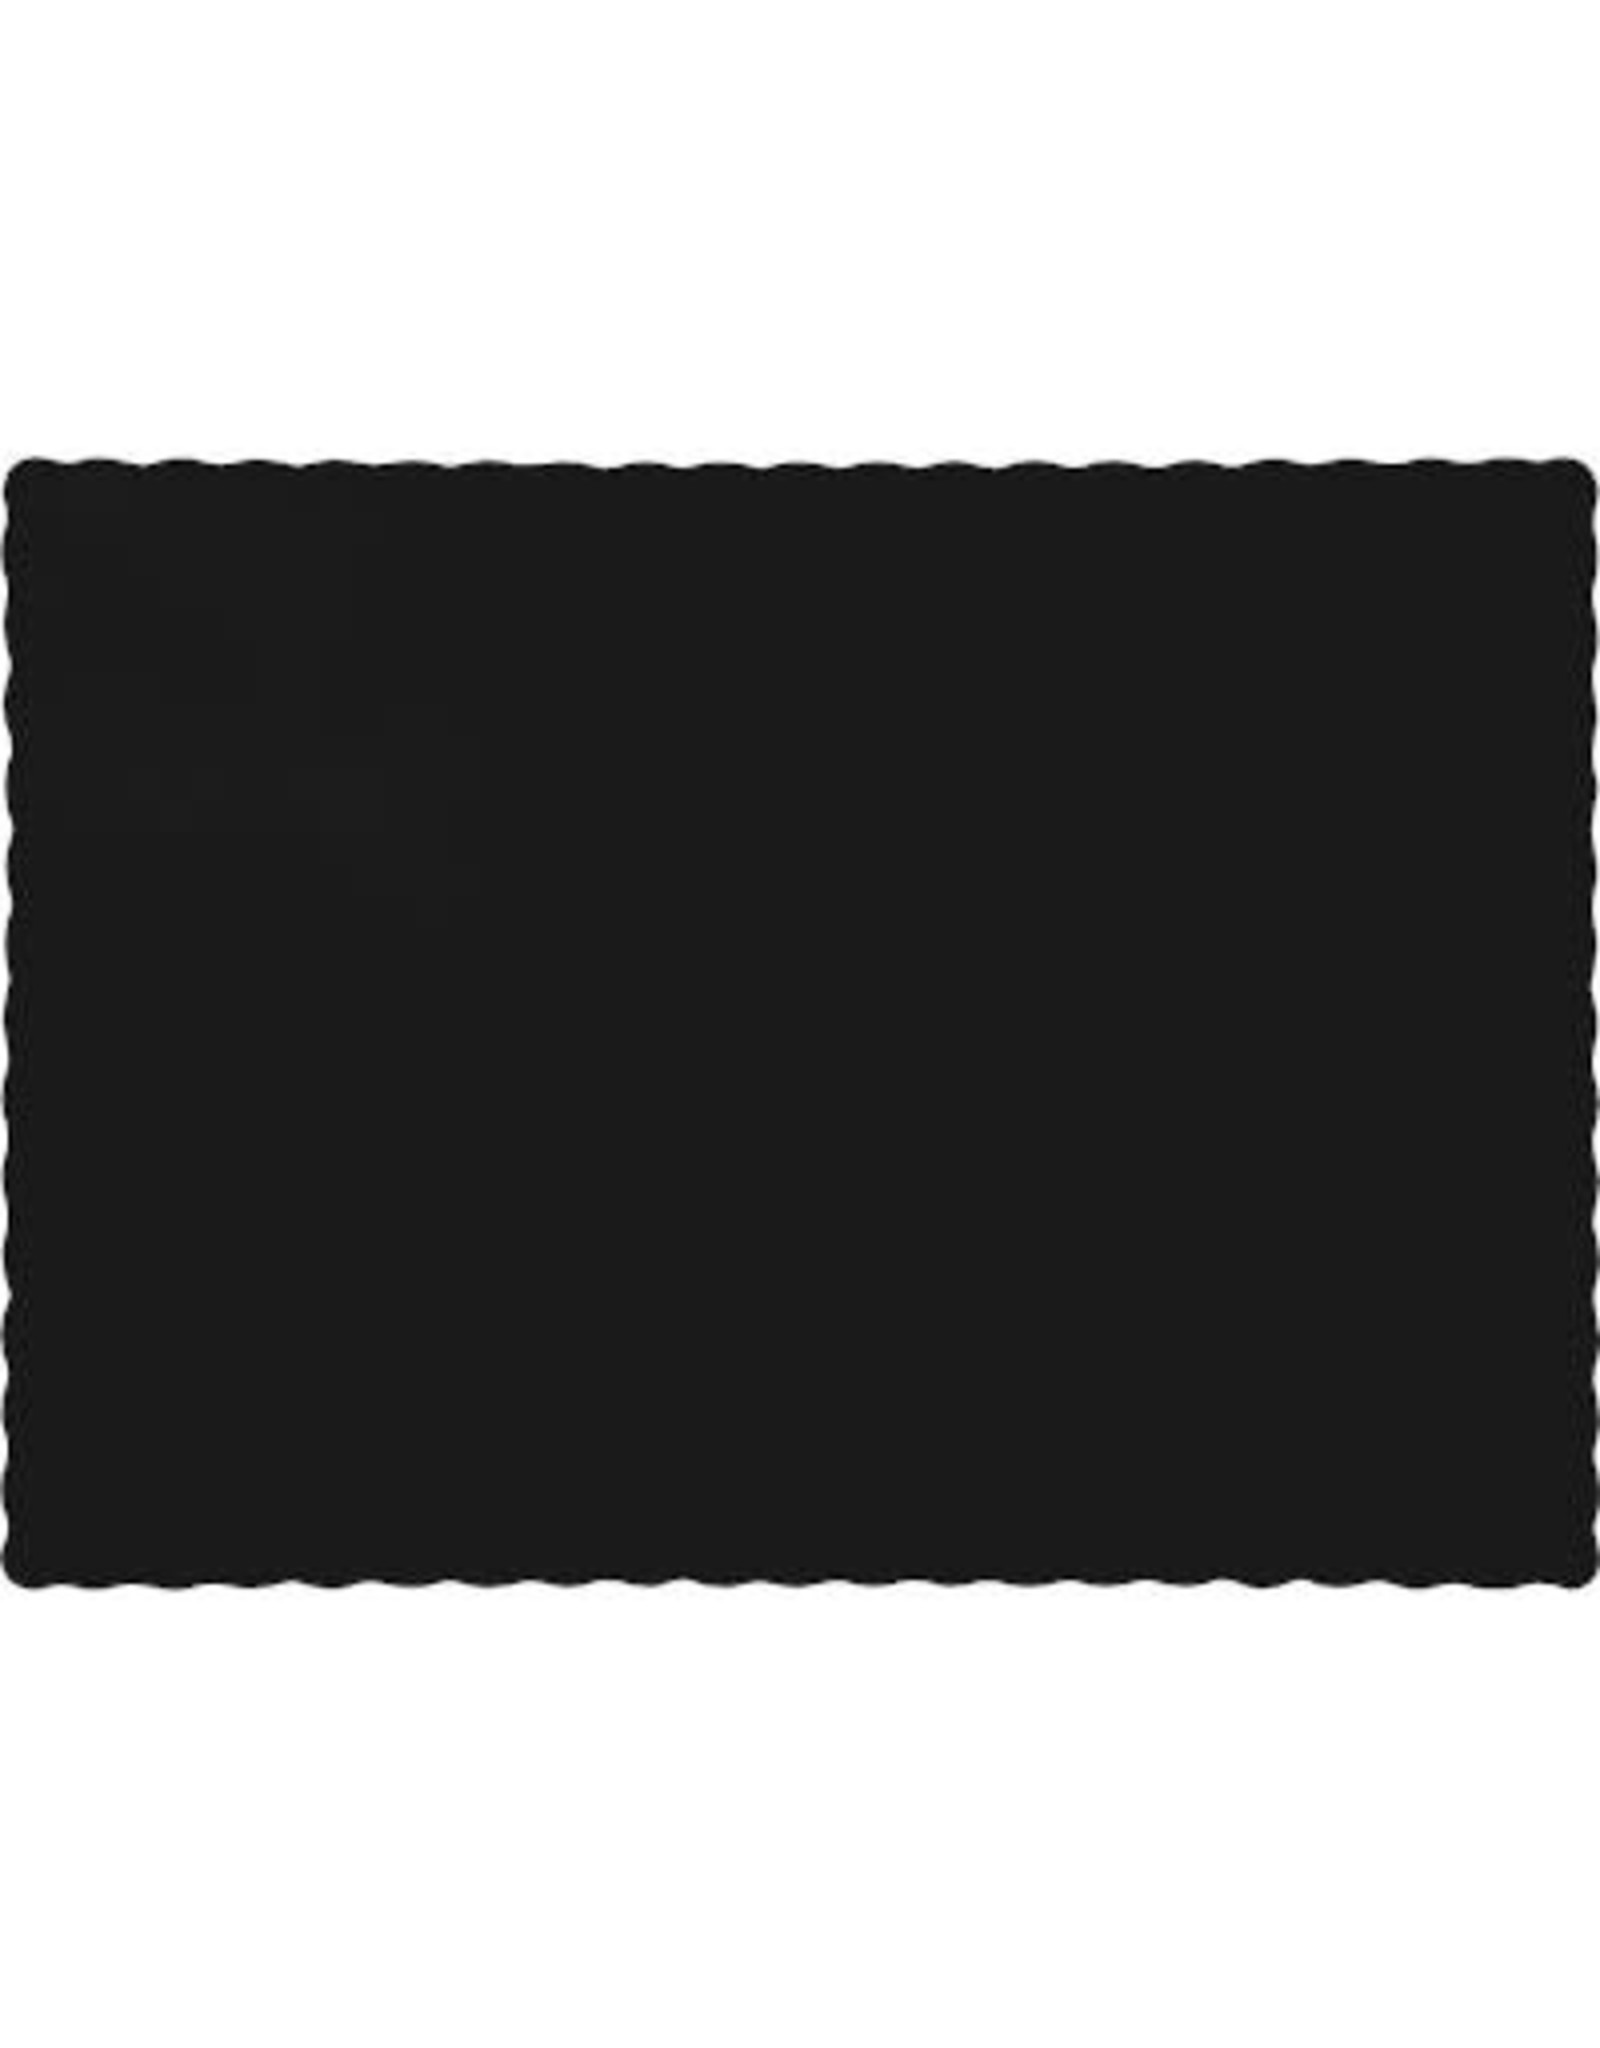 Touch of Color BLACK PLACEMATS